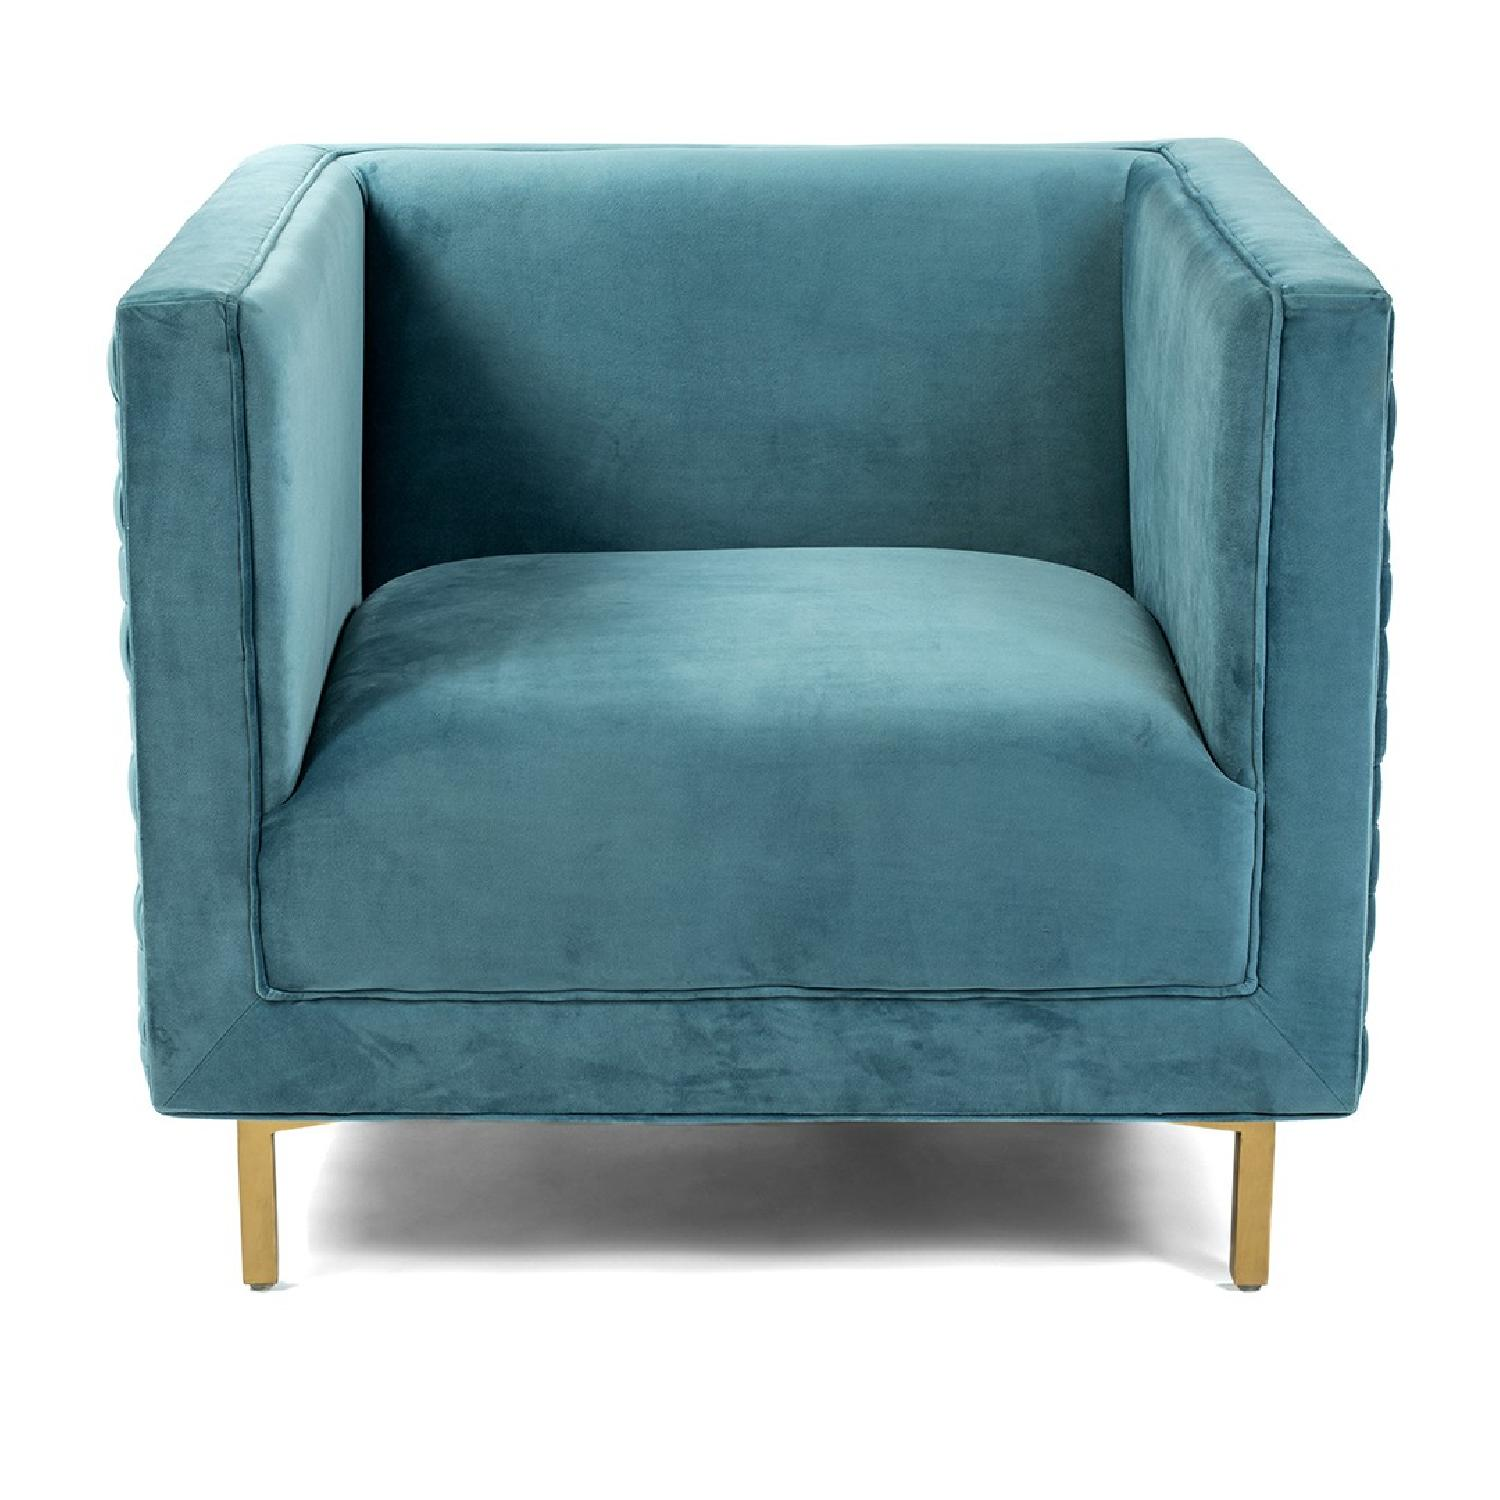 Lulu & Gergioa Caieen Teal Chair